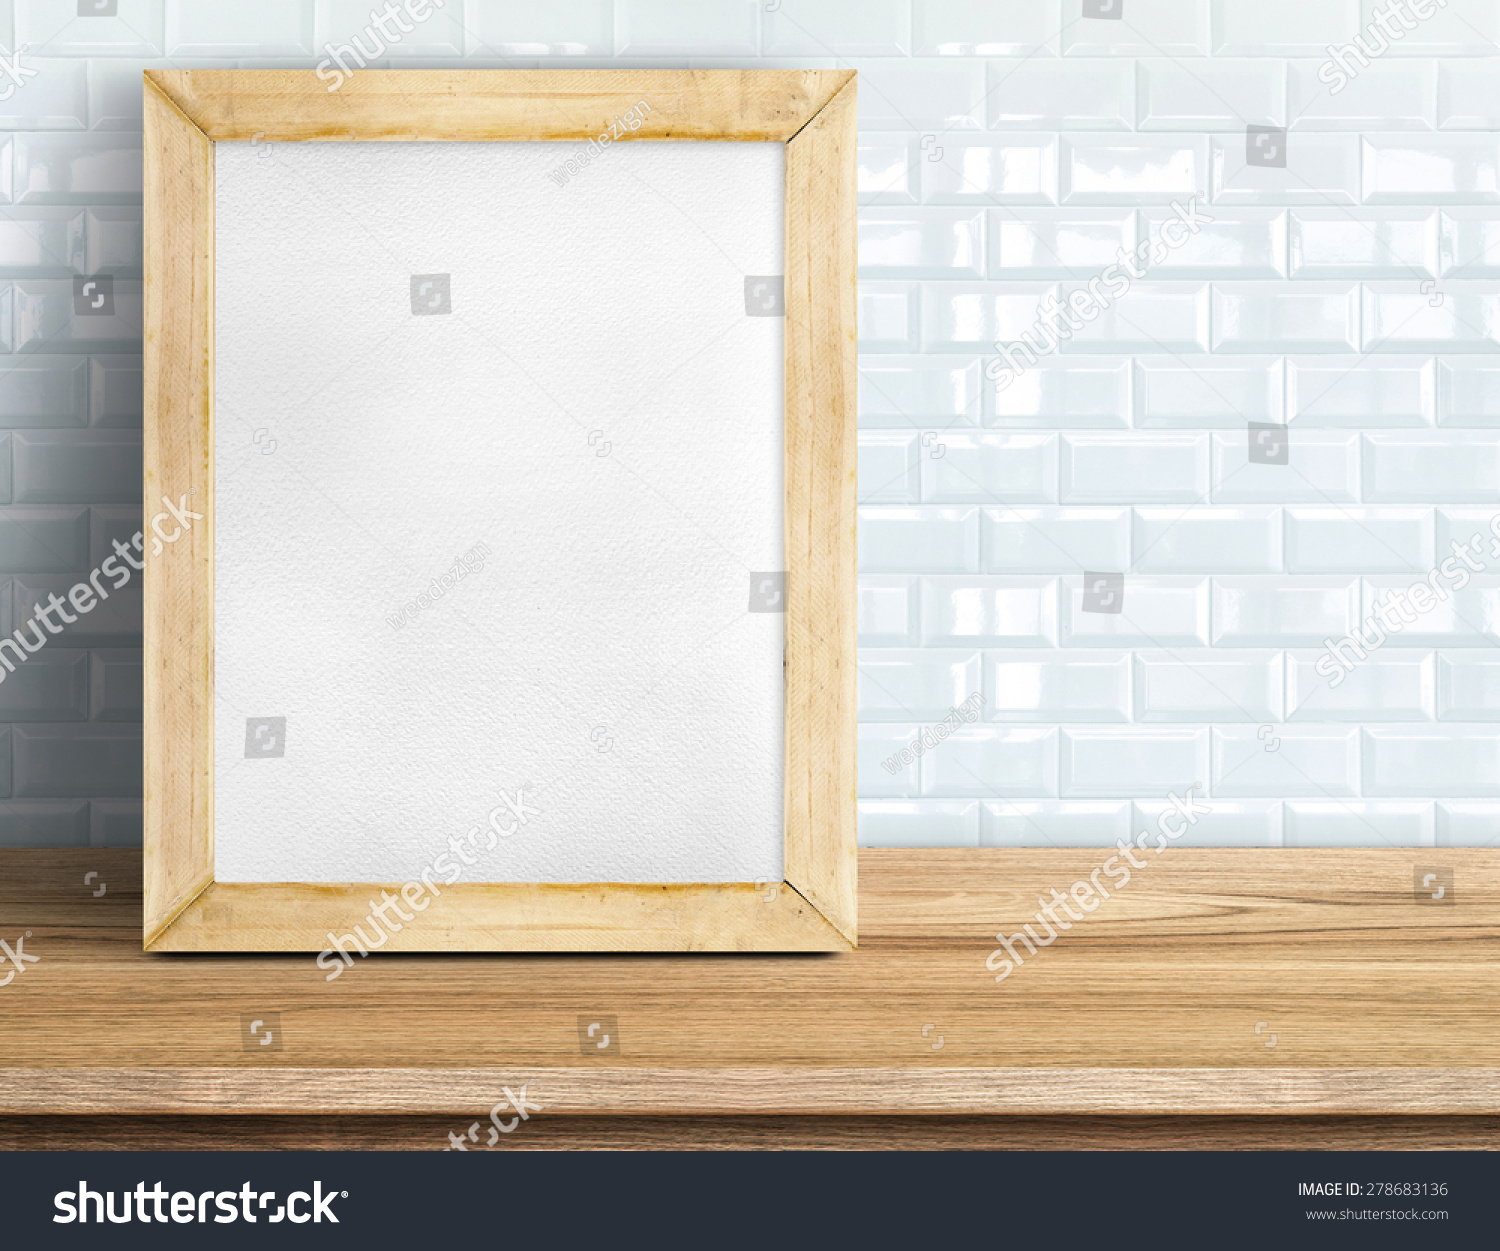 Fantastic Whiteboard With Wooden Frame Images - Ideas de Marcos ...